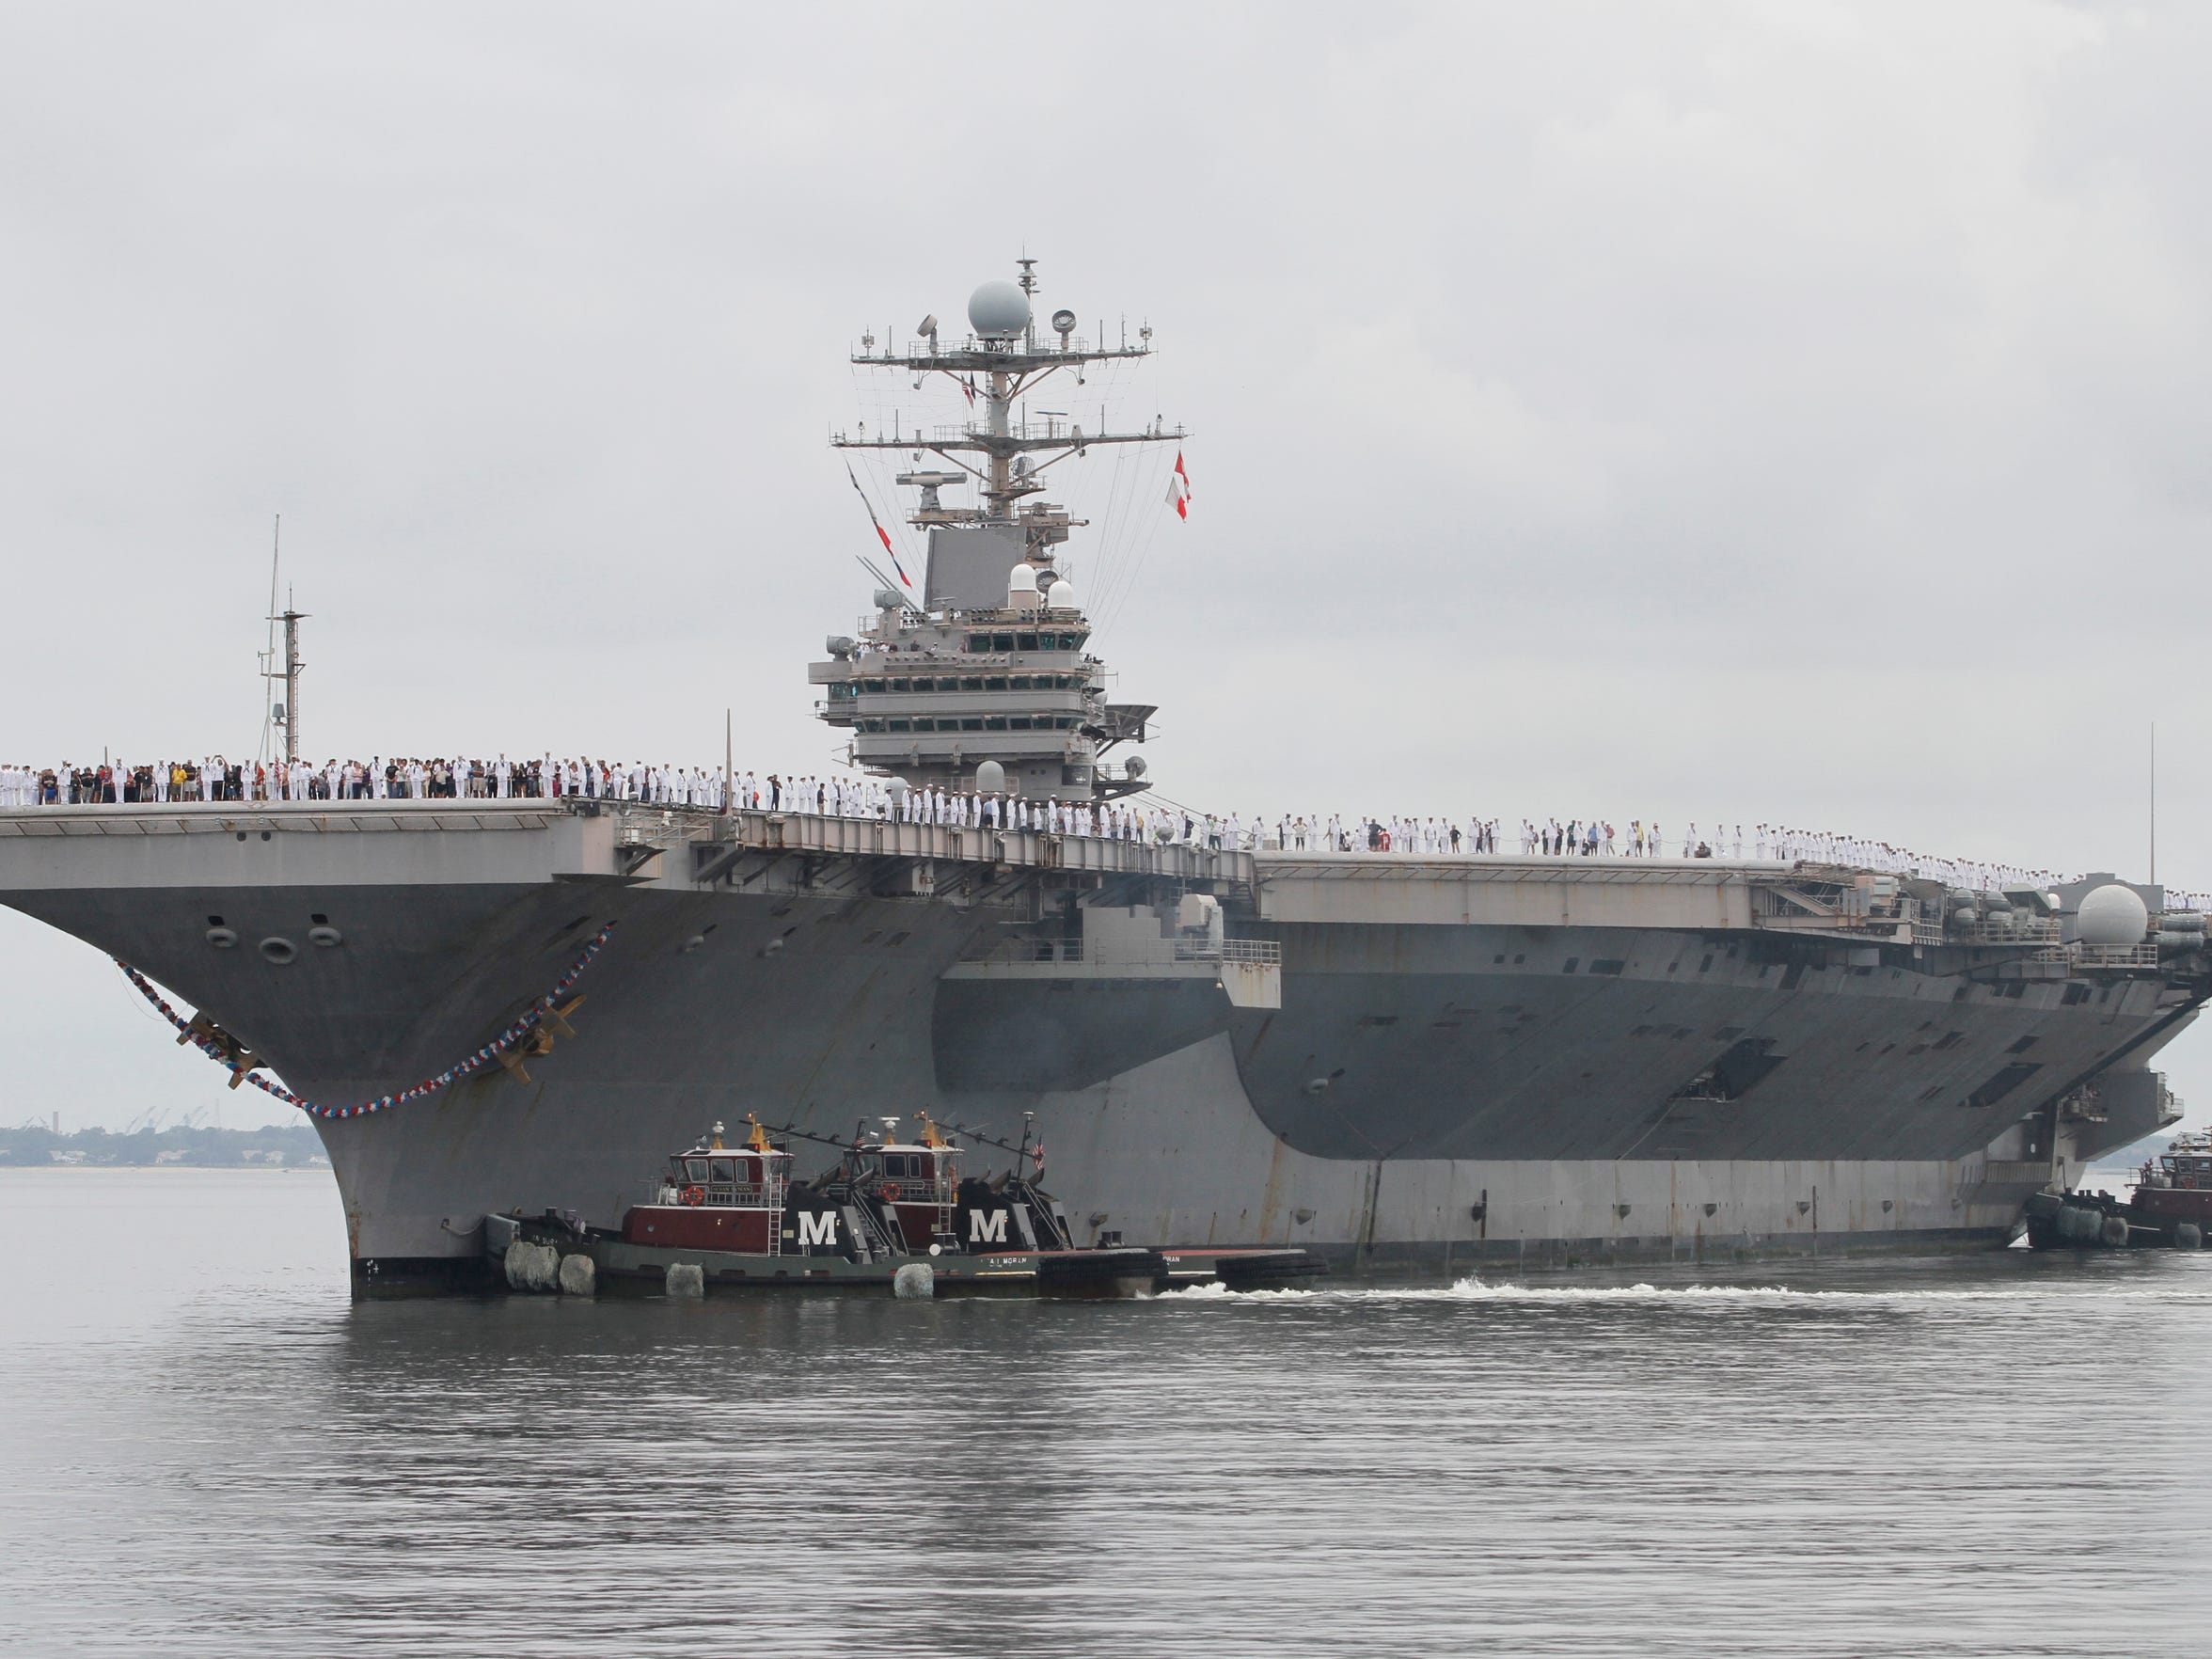 The nuclear-powered aircraft carrier Abraham Lincoln arrives at Naval Station Norfolk in Norfolk, Va., on Aug. 7, 2012.